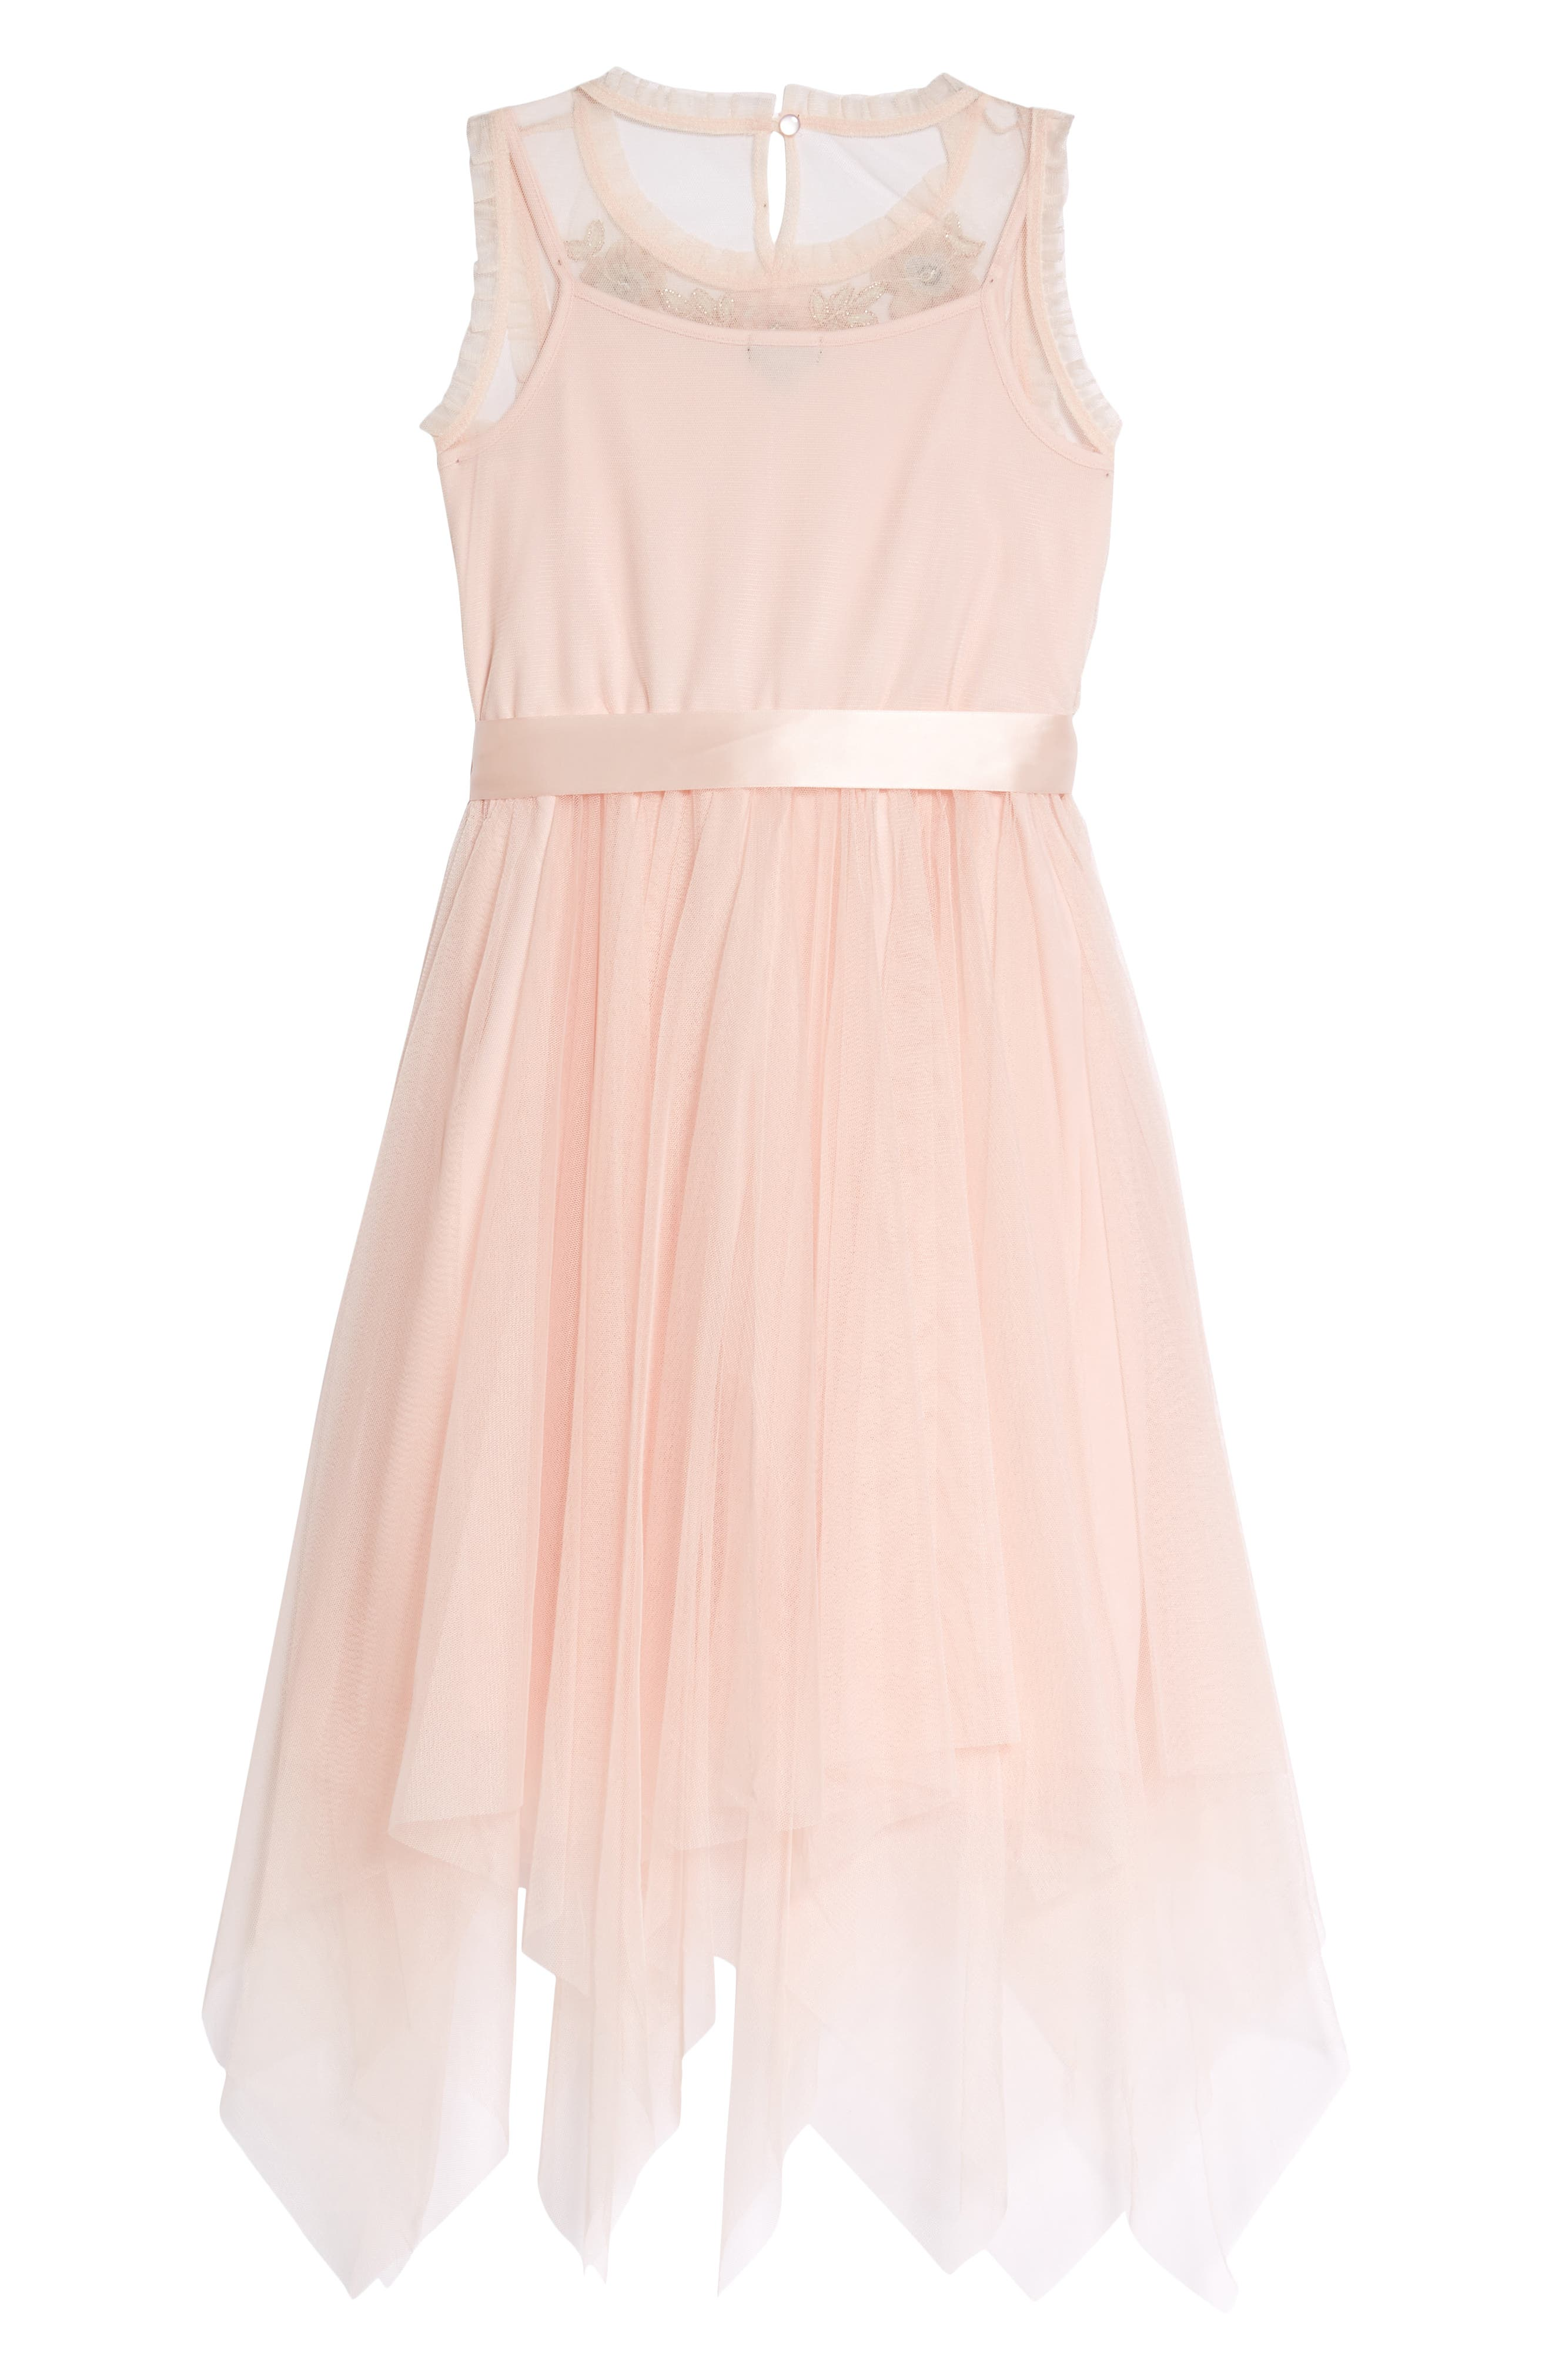 Embroidered Ballerina Dress,                             Alternate thumbnail 2, color,                             686